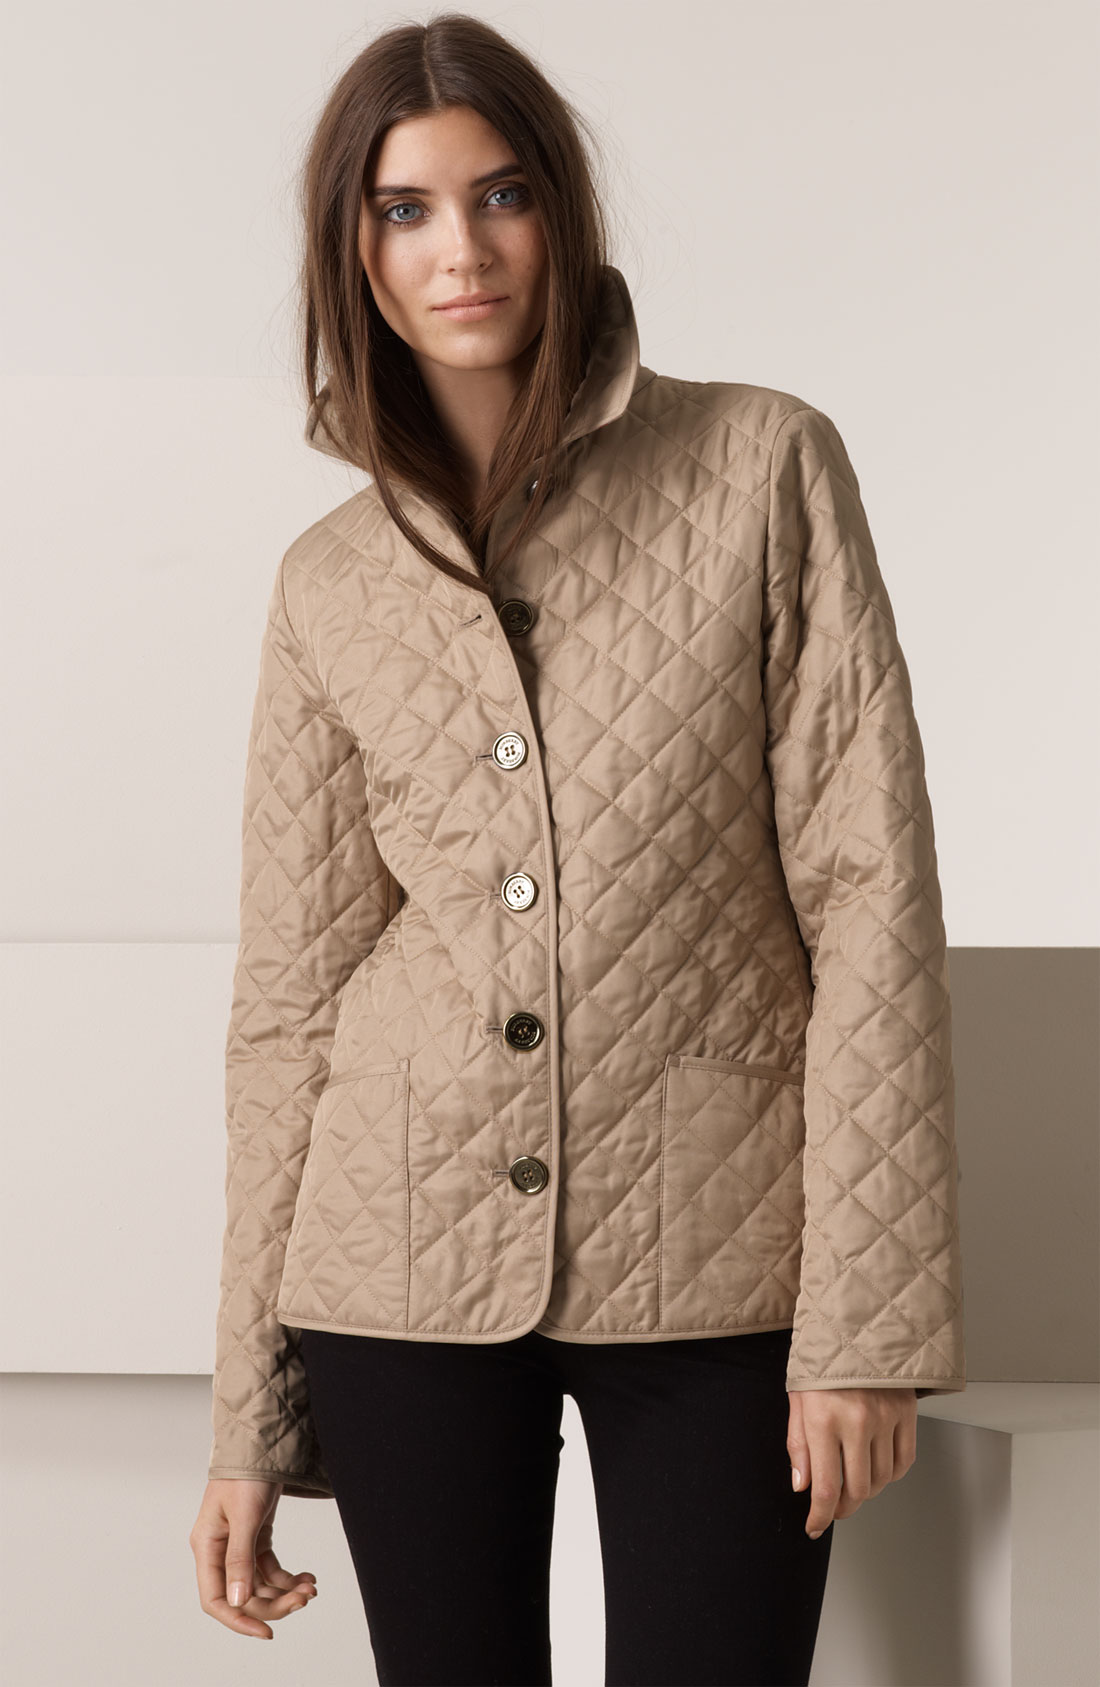 Lyst - Burberry brit Diamond Quilted Jacket in Natural : diamond quilted jacket burberry - Adamdwight.com